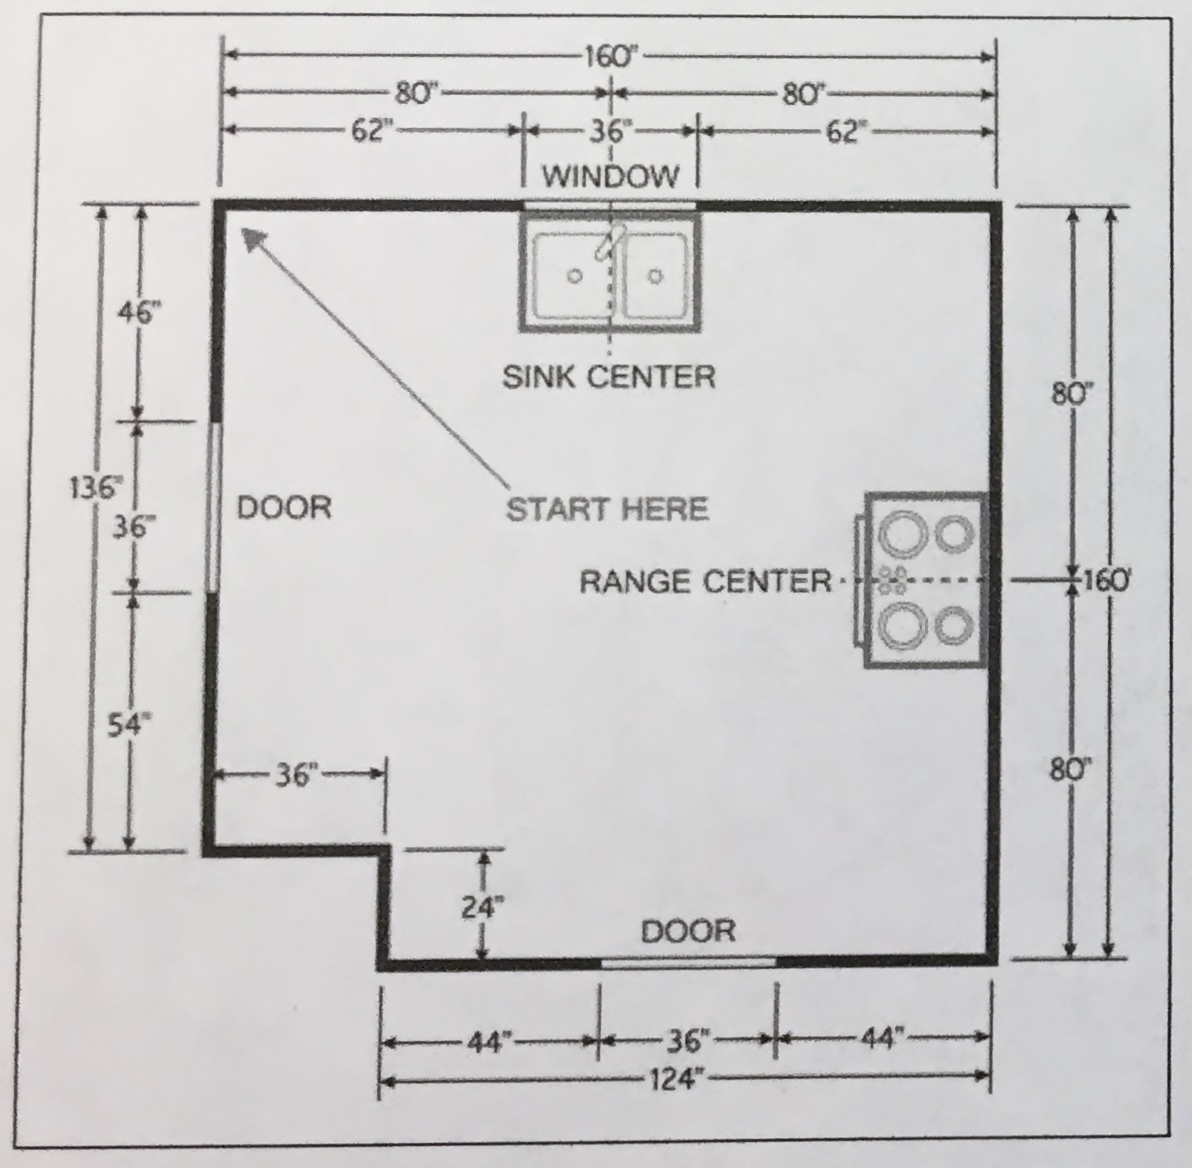 Measuring For Kitchen Cabinets: Kitchen Cabinet Measuring